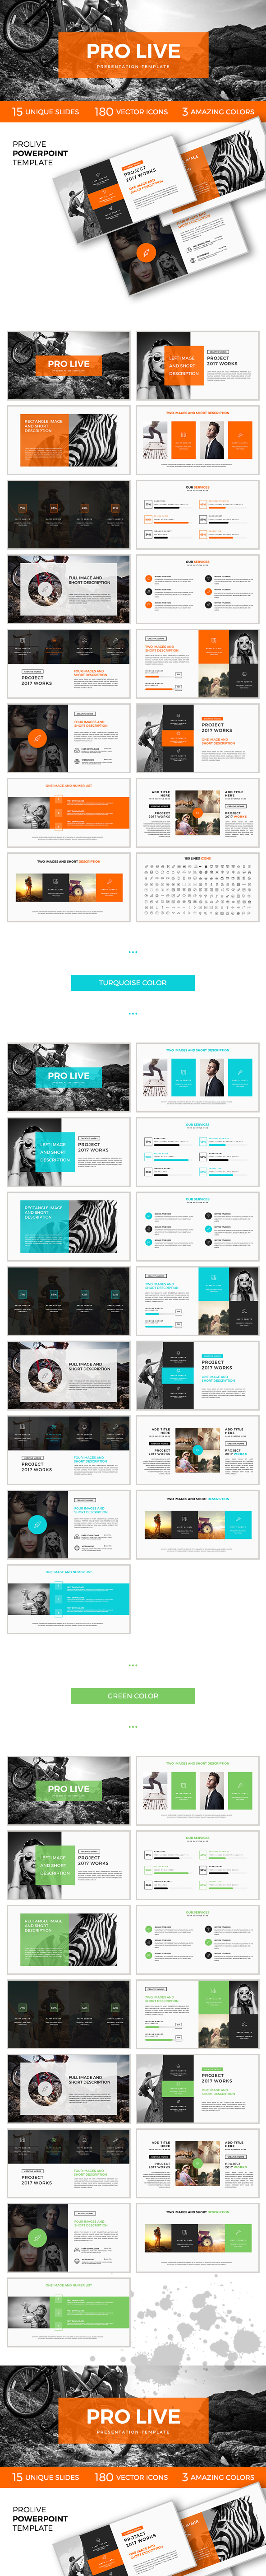 GraphicRiver Pro Live PowerPoint Template 20405154